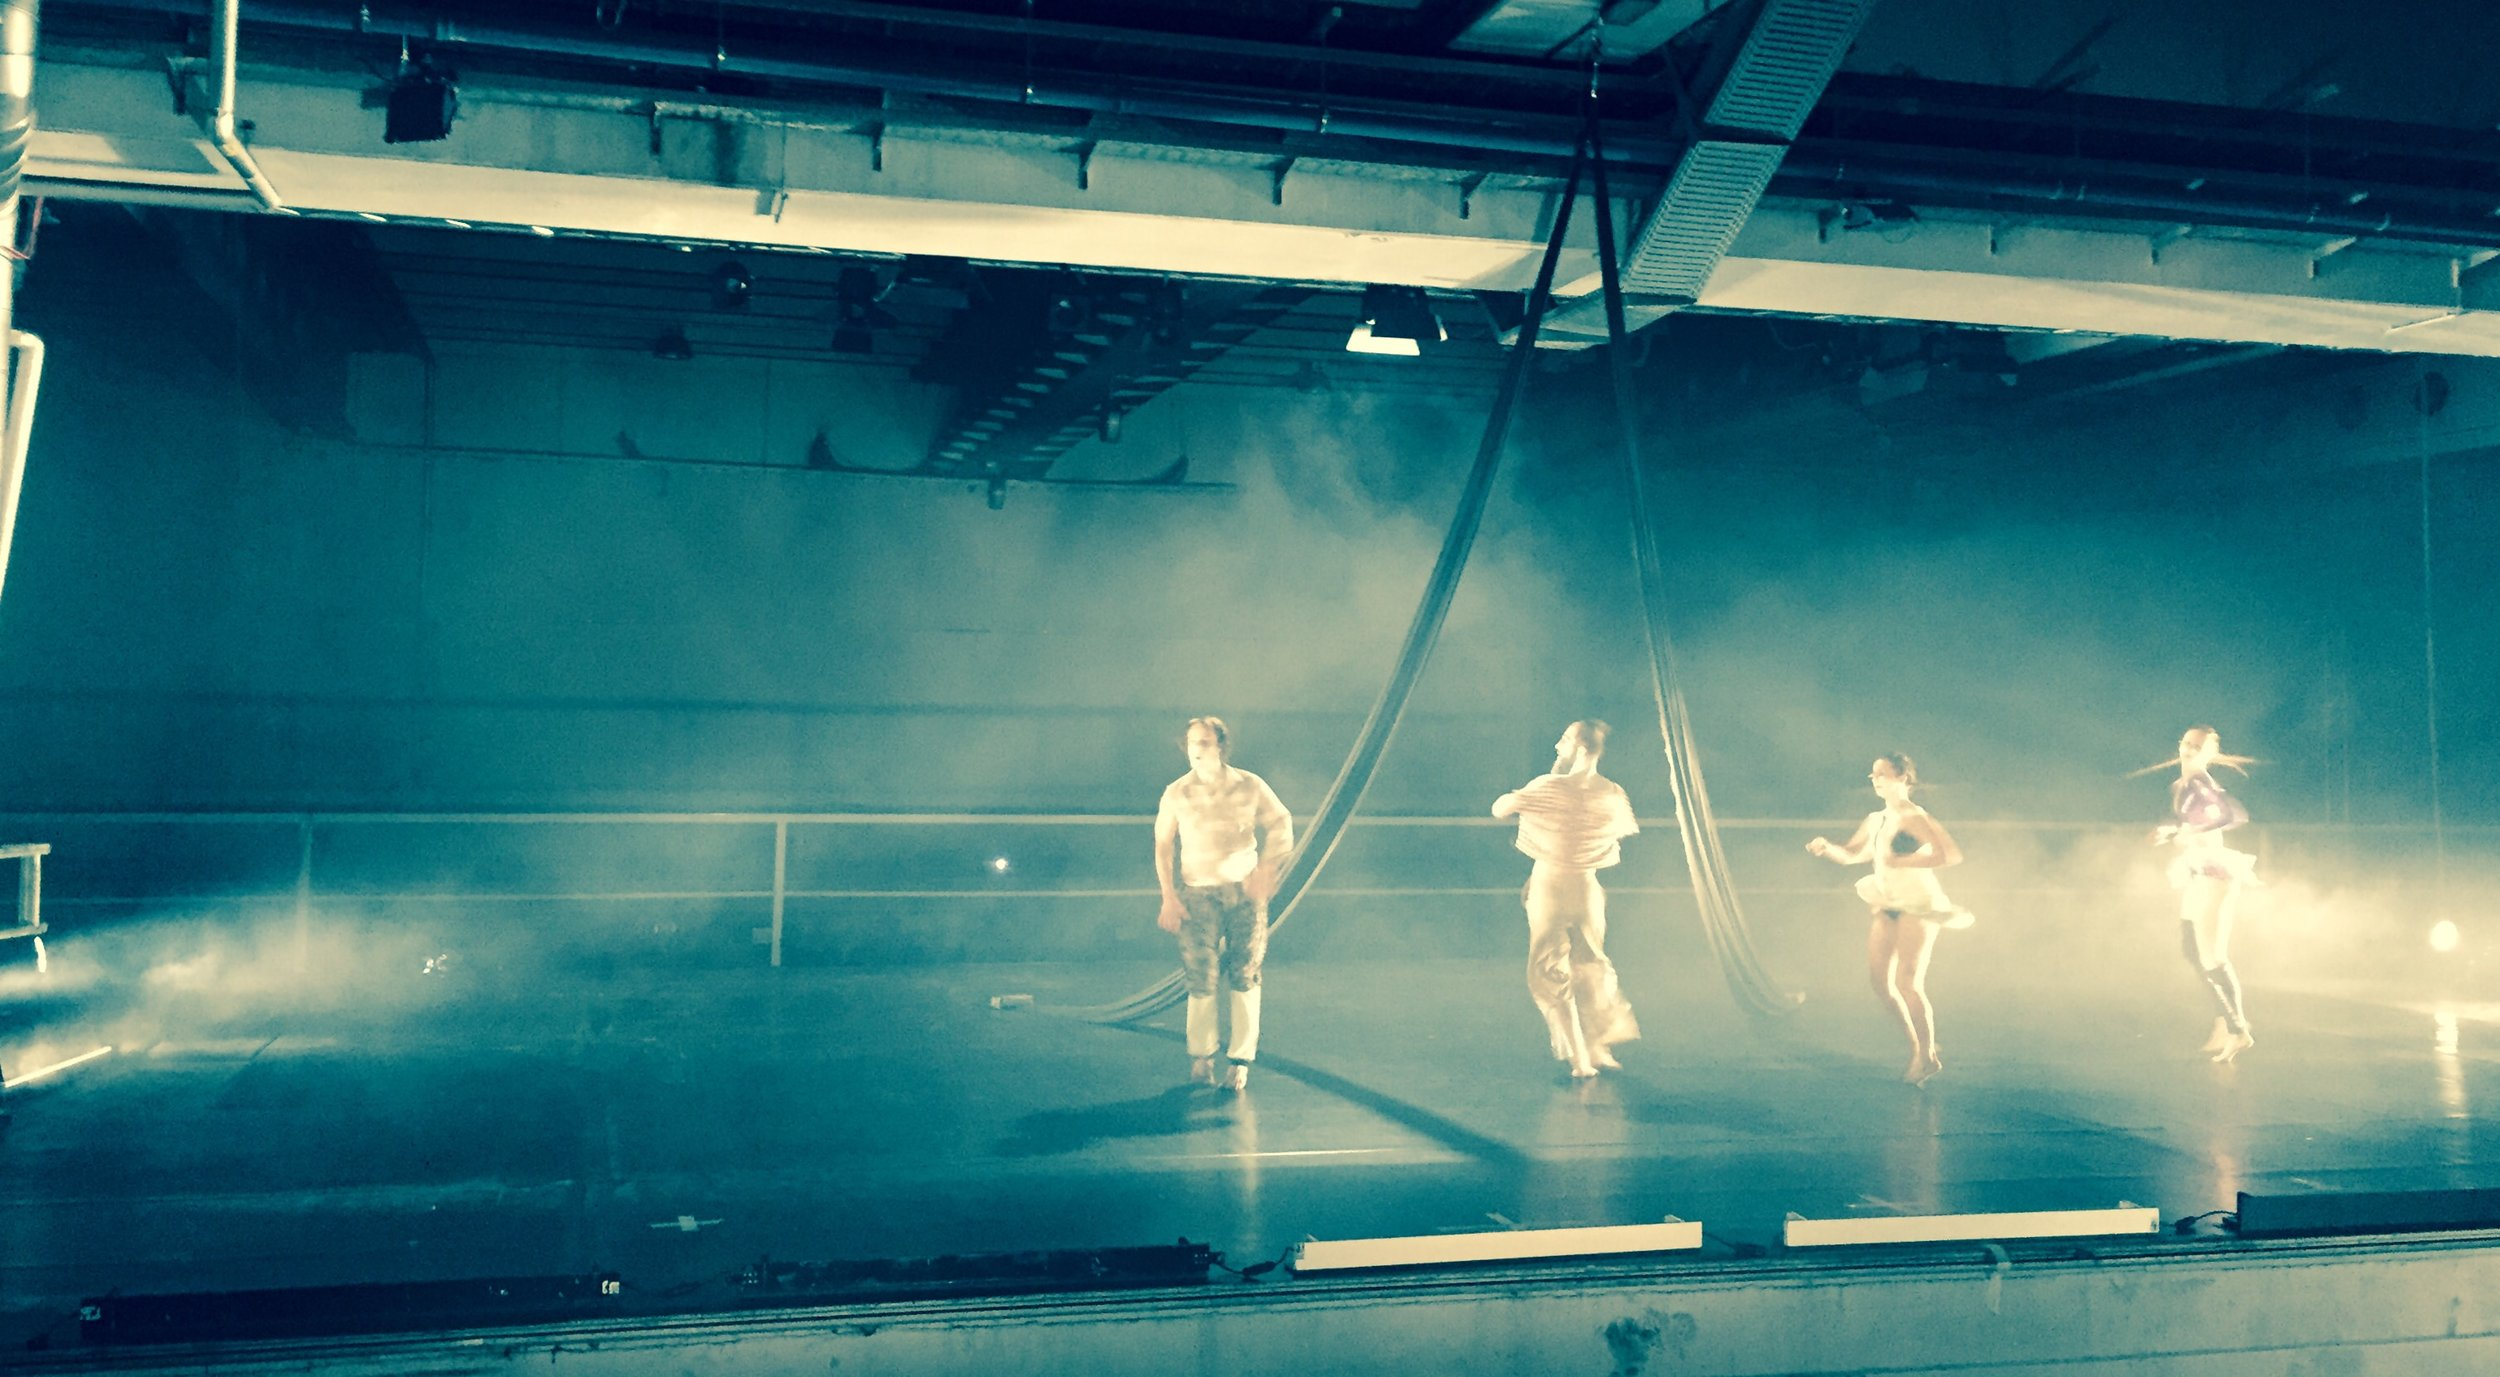 Opening night dancers, with bass speakers in the underground hall that vibrate every atom in you.